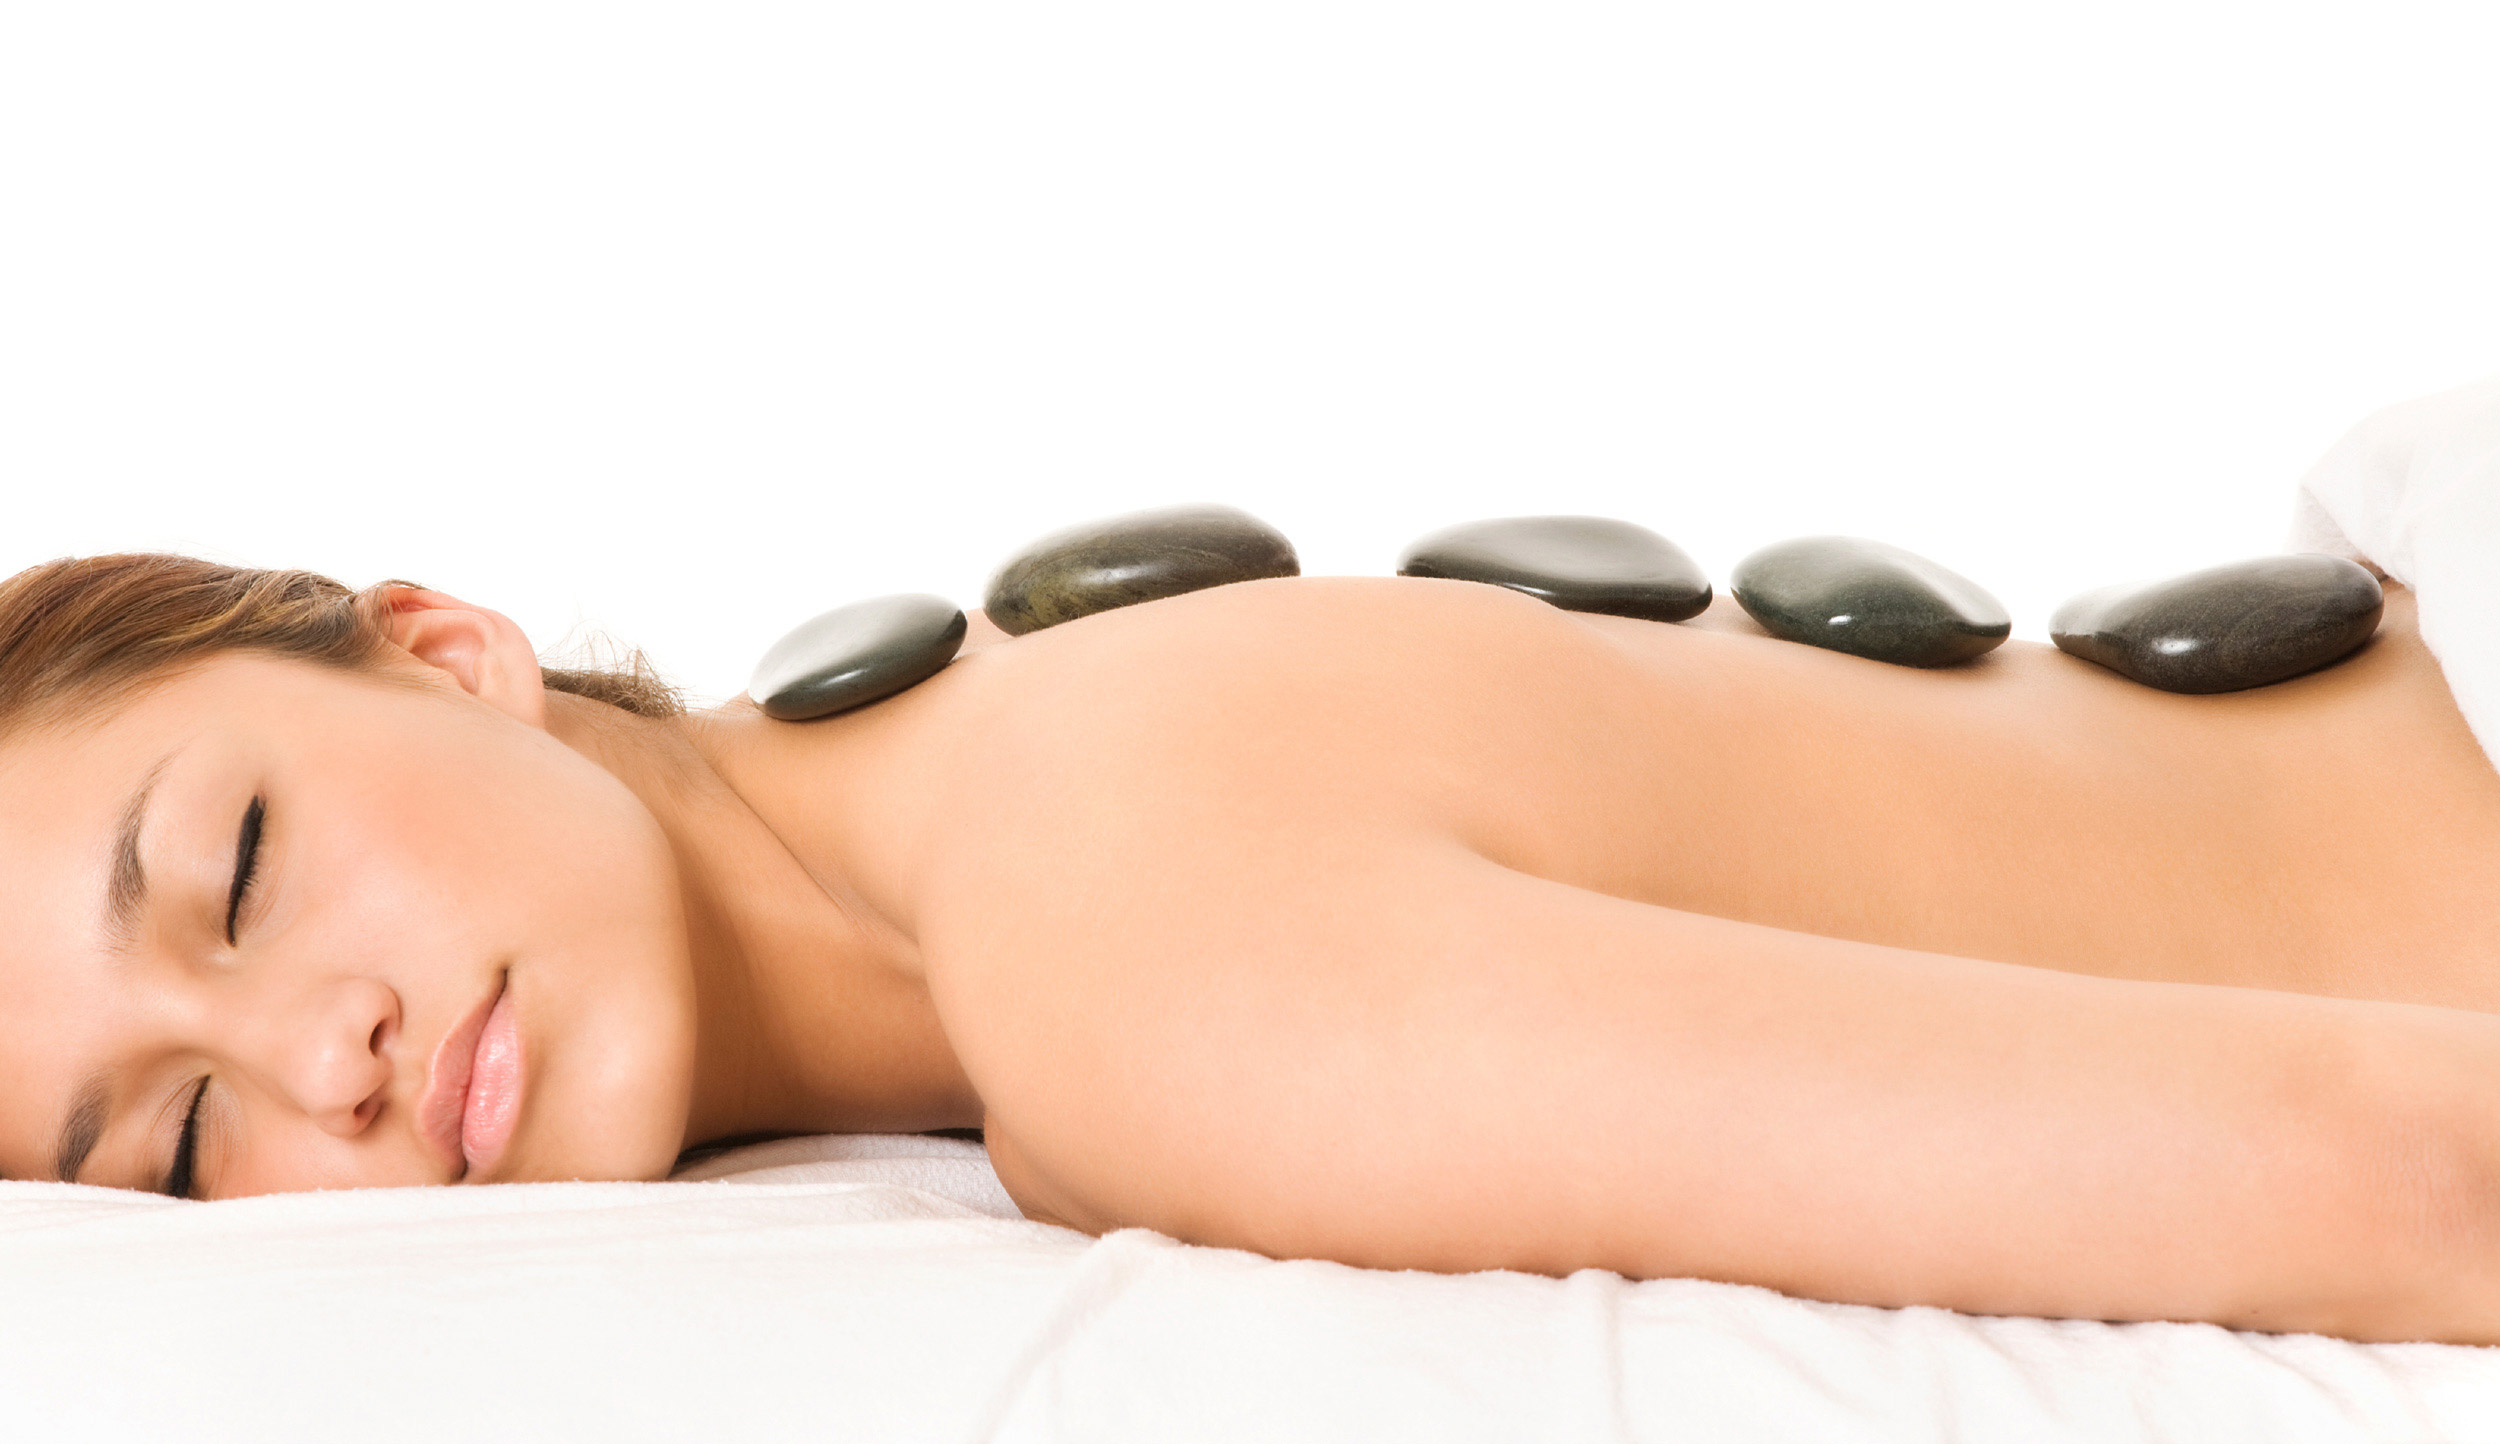 Stoned - Volcanic Hot Stone Back Massage**£45 40 mins - Wow - feeling is believing. A Hot stone massage is truly relaxing and will assist with the softening of tight muscles as the heat from the stones is absorbed by the body allowing the receiver to relax deeply and help tensions release.